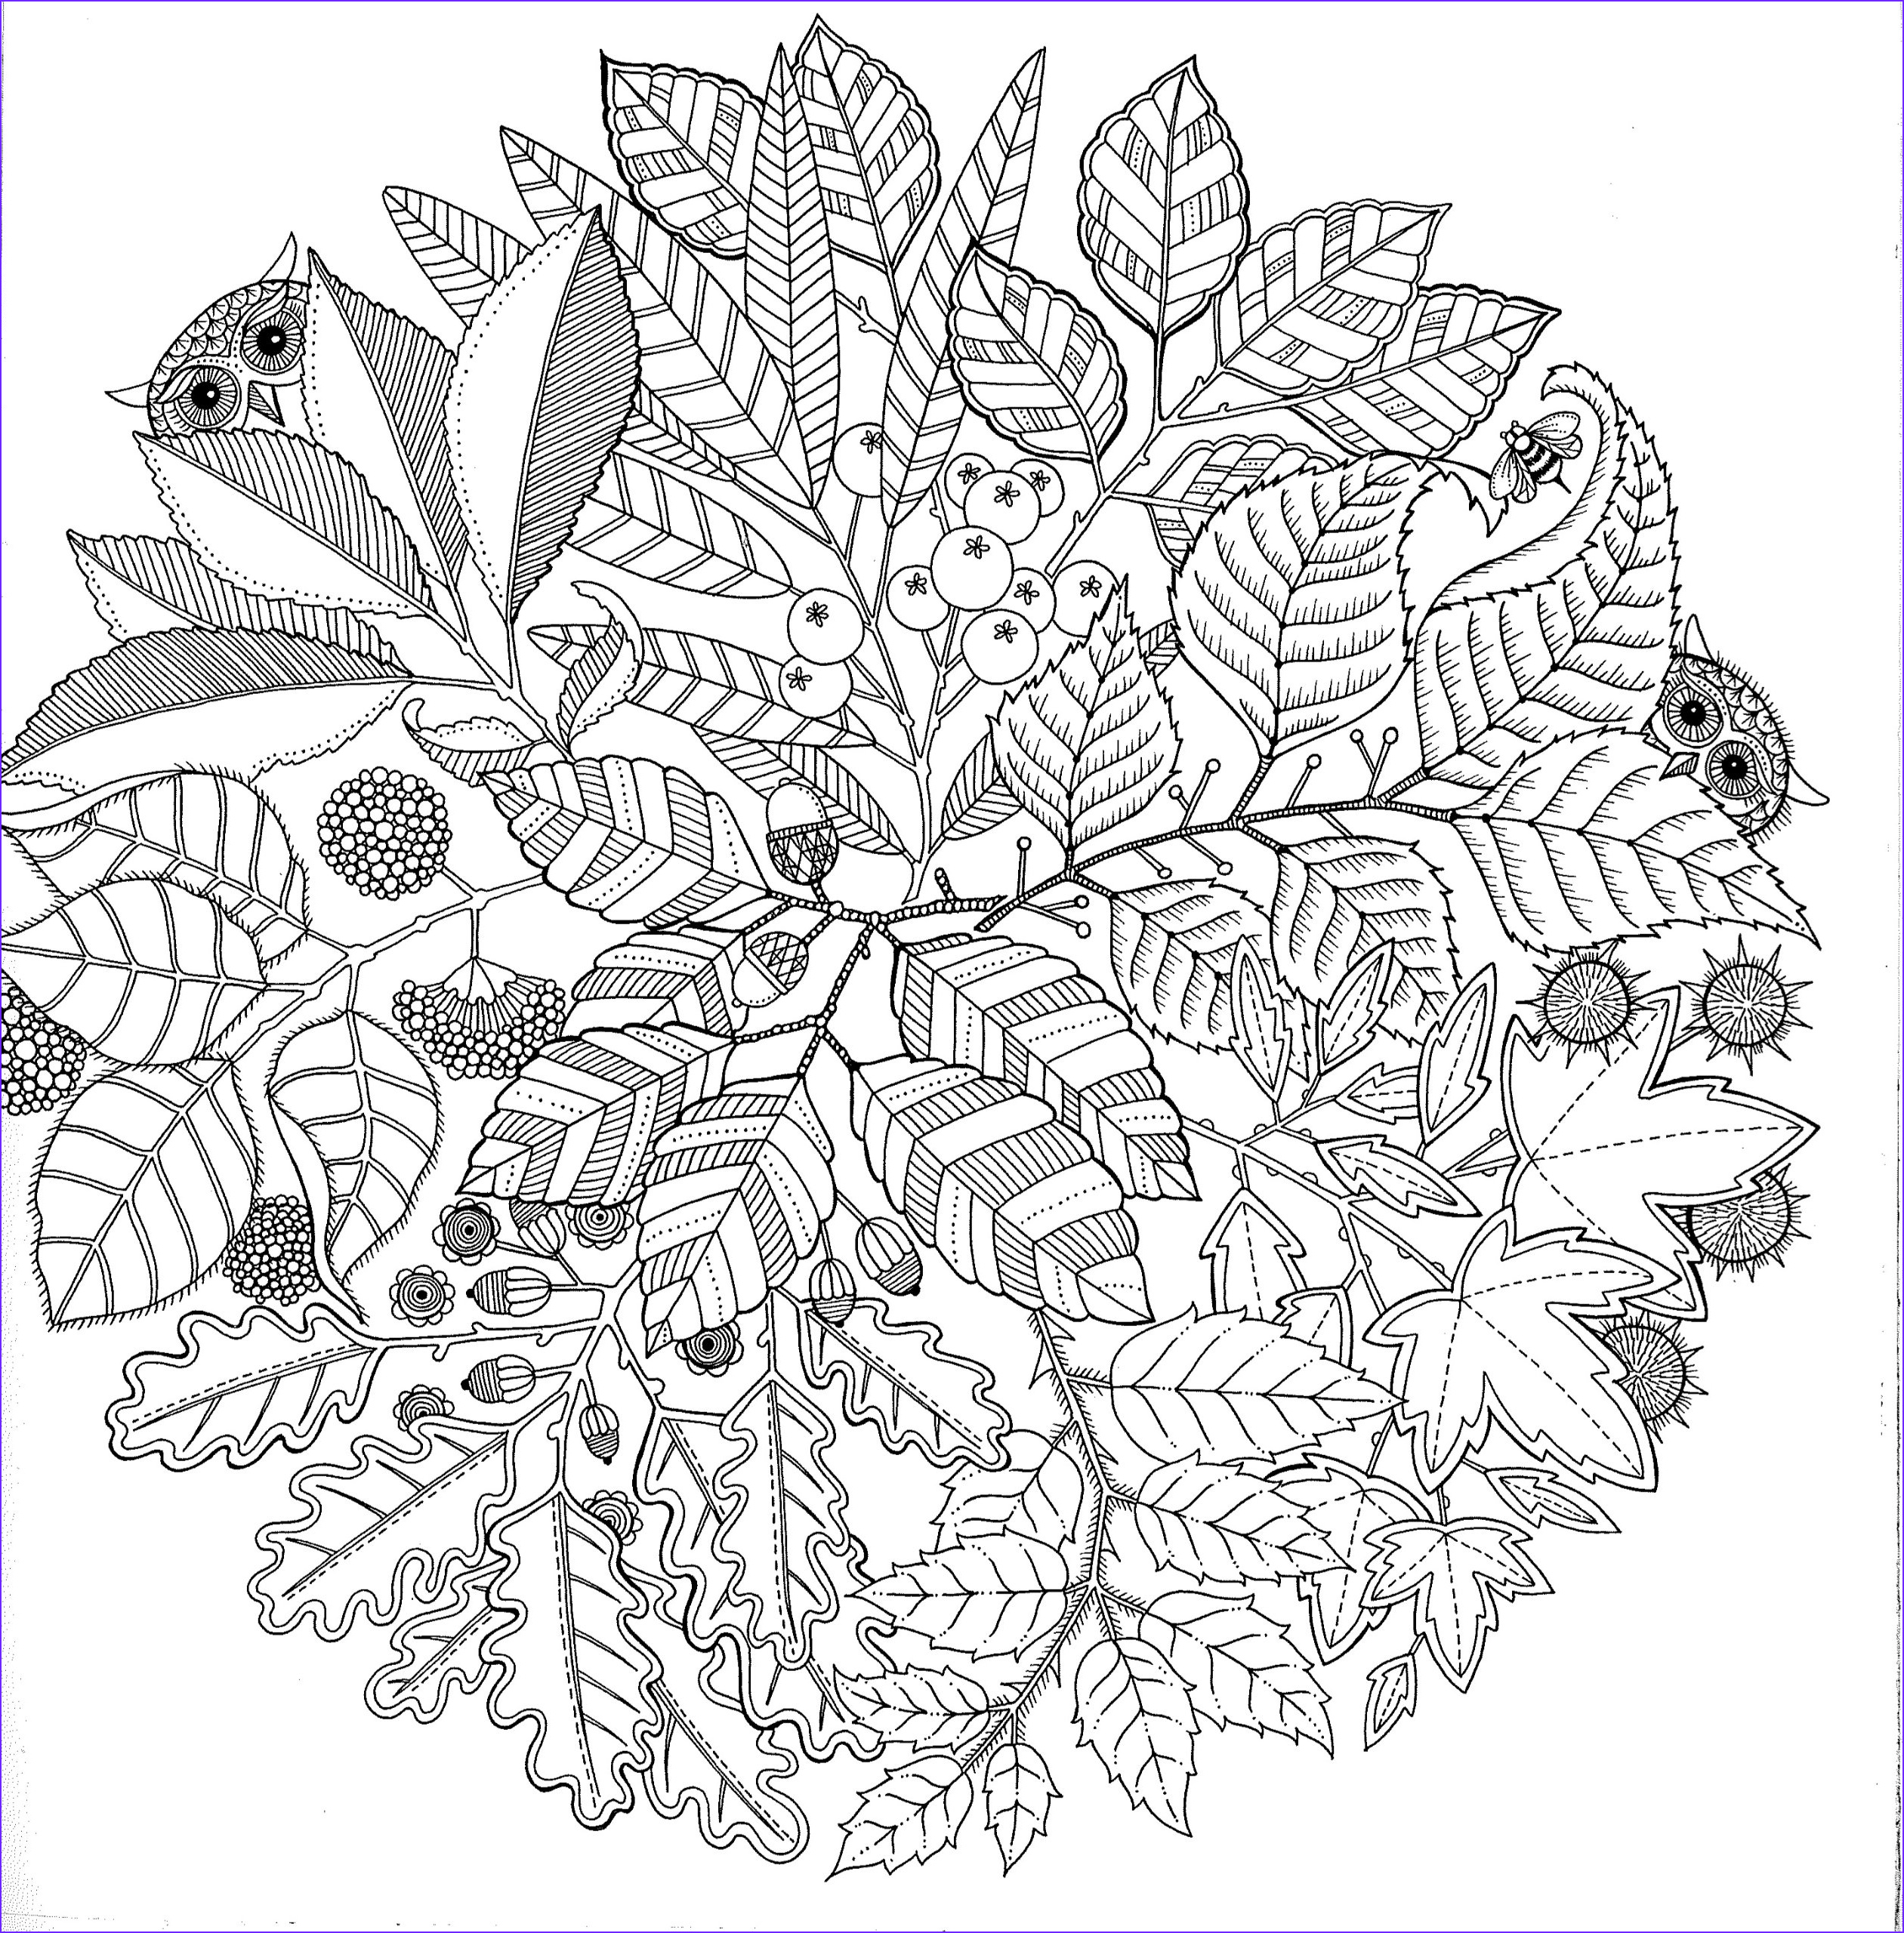 Coloring Images for Adults Awesome Photos Free Printable Abstract Coloring Pages for Adults